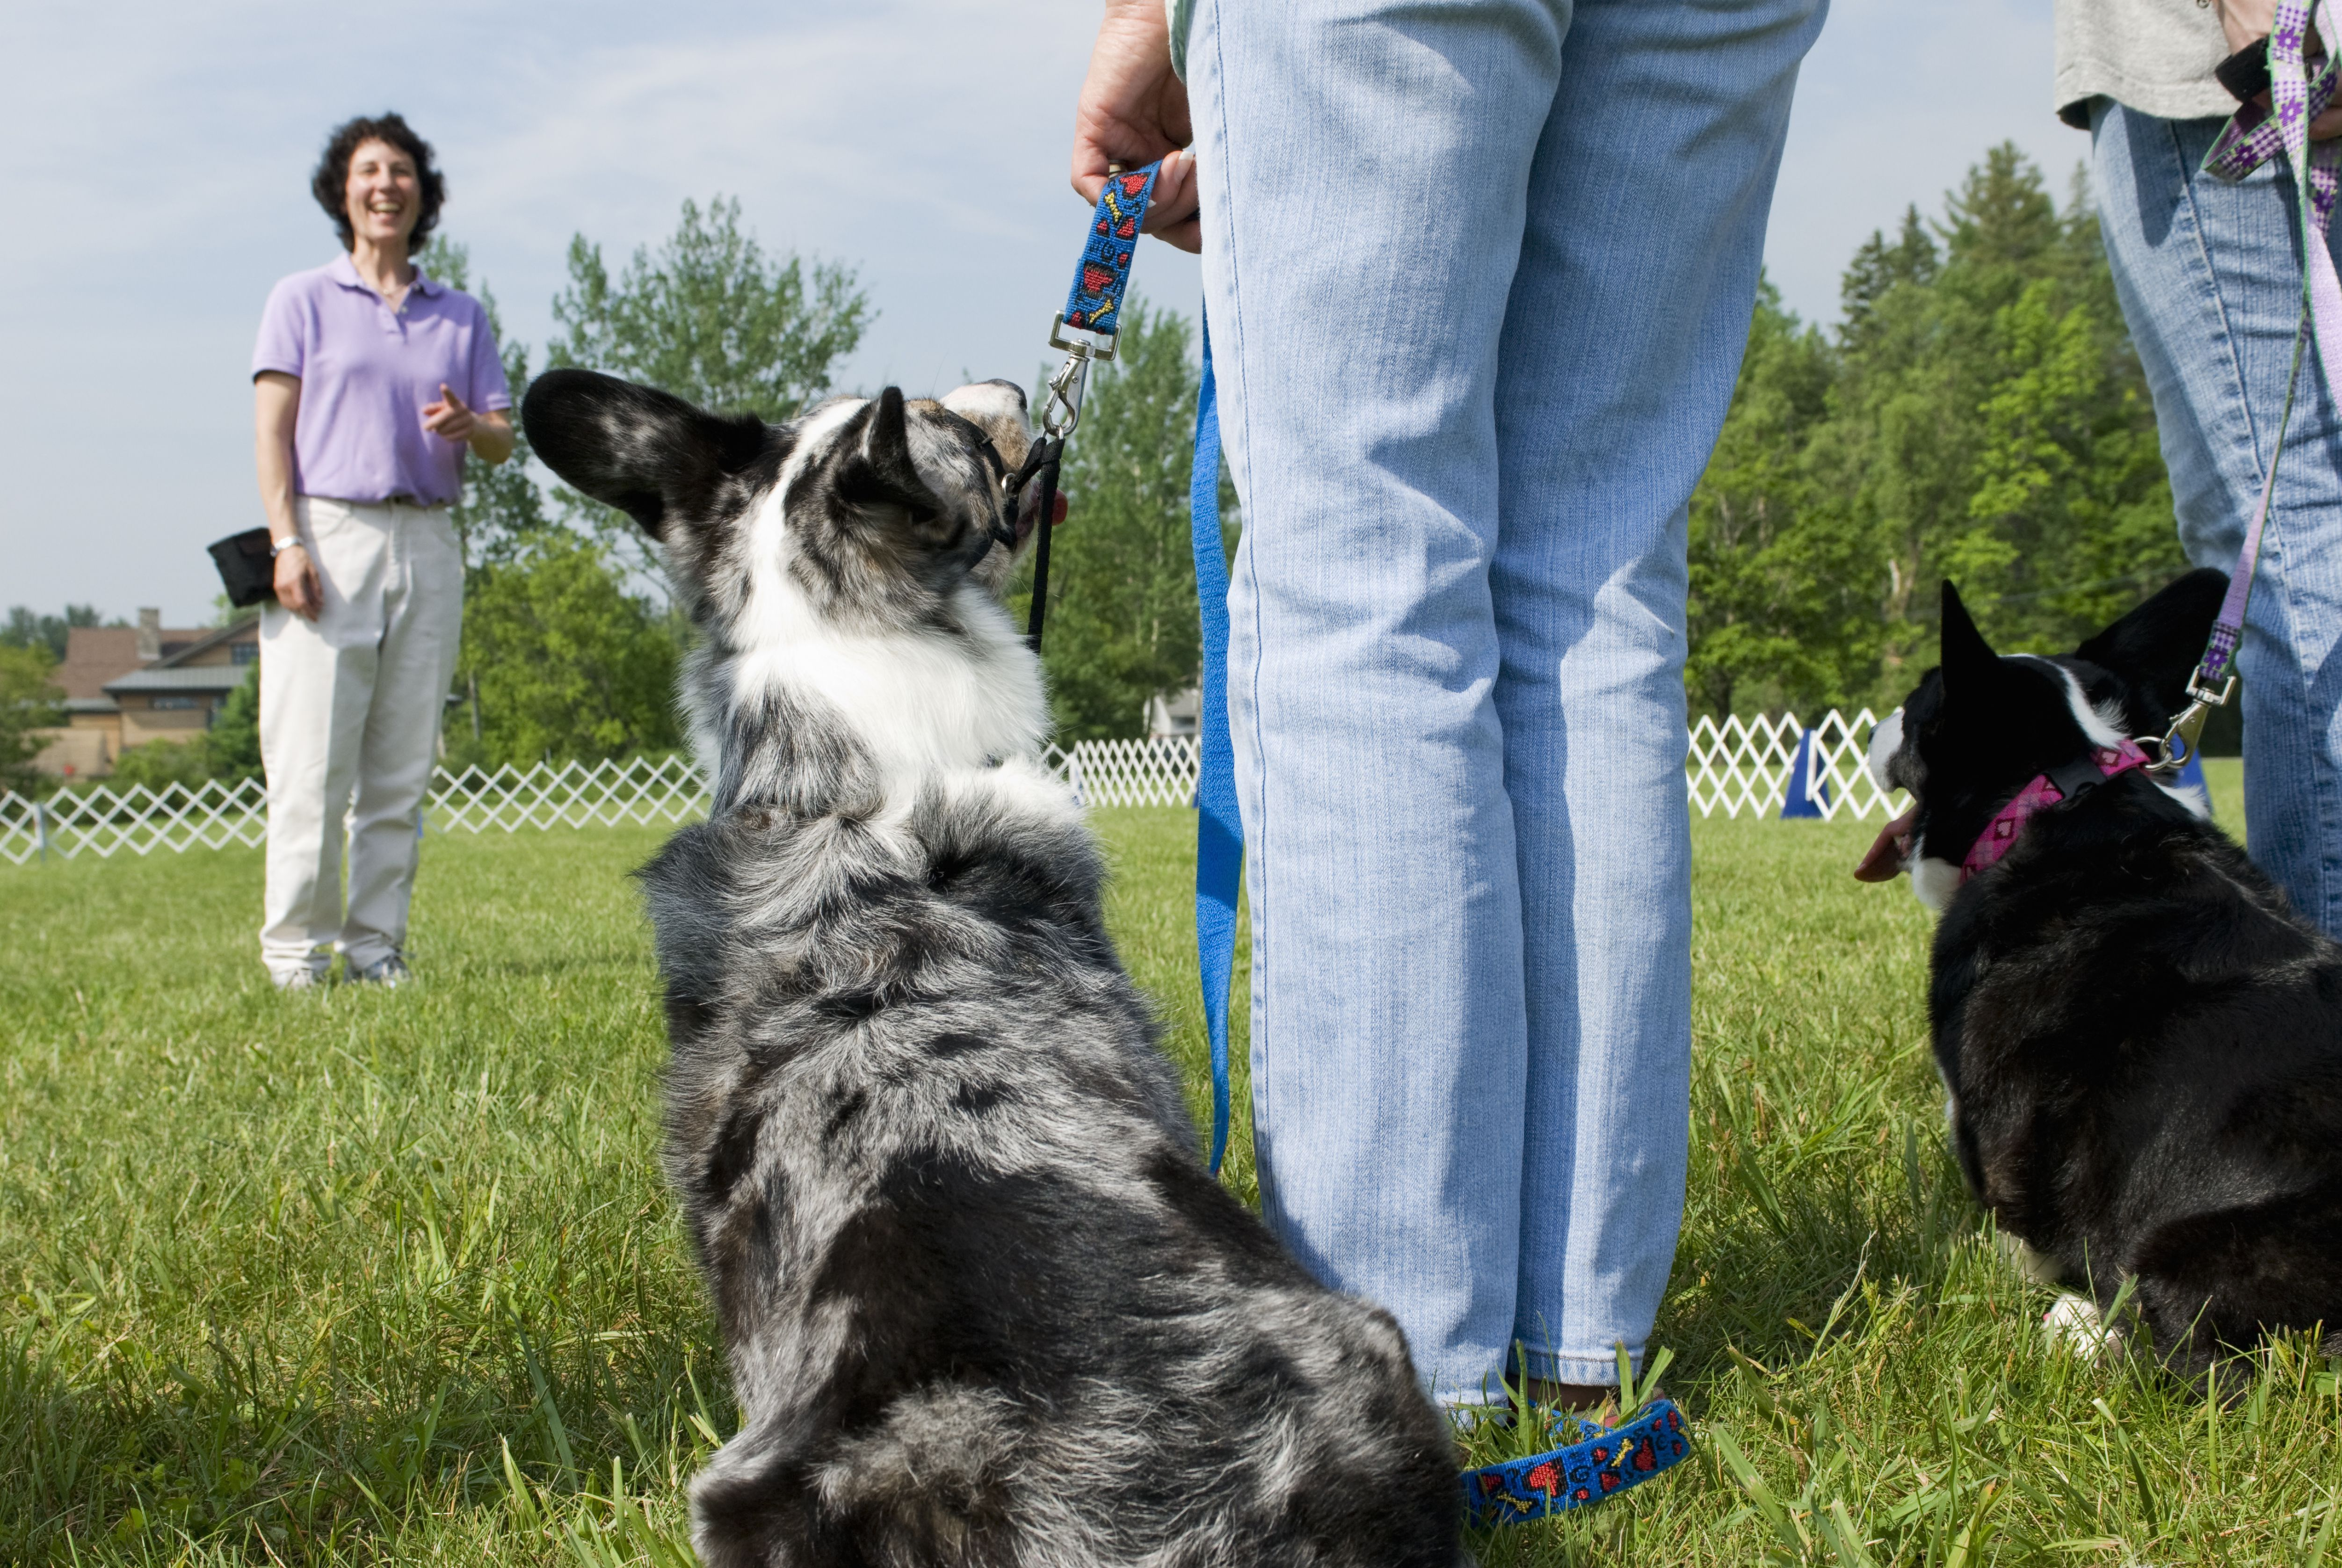 Do You Speak Canine? Consider a Career as a Dog Trainer